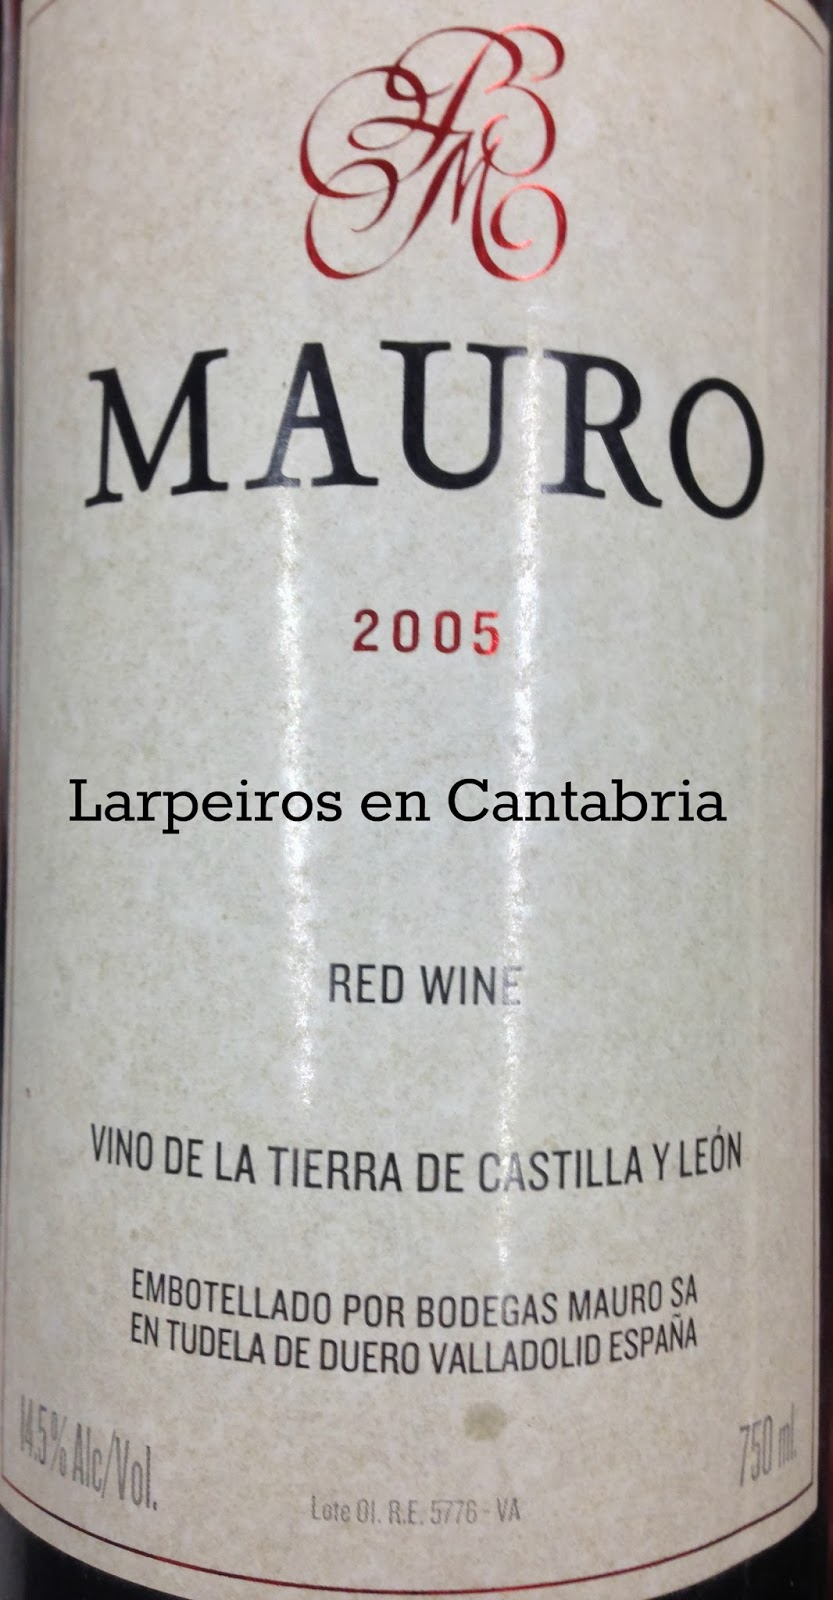 Tinto Mauro 2005: A sus pies Mariano